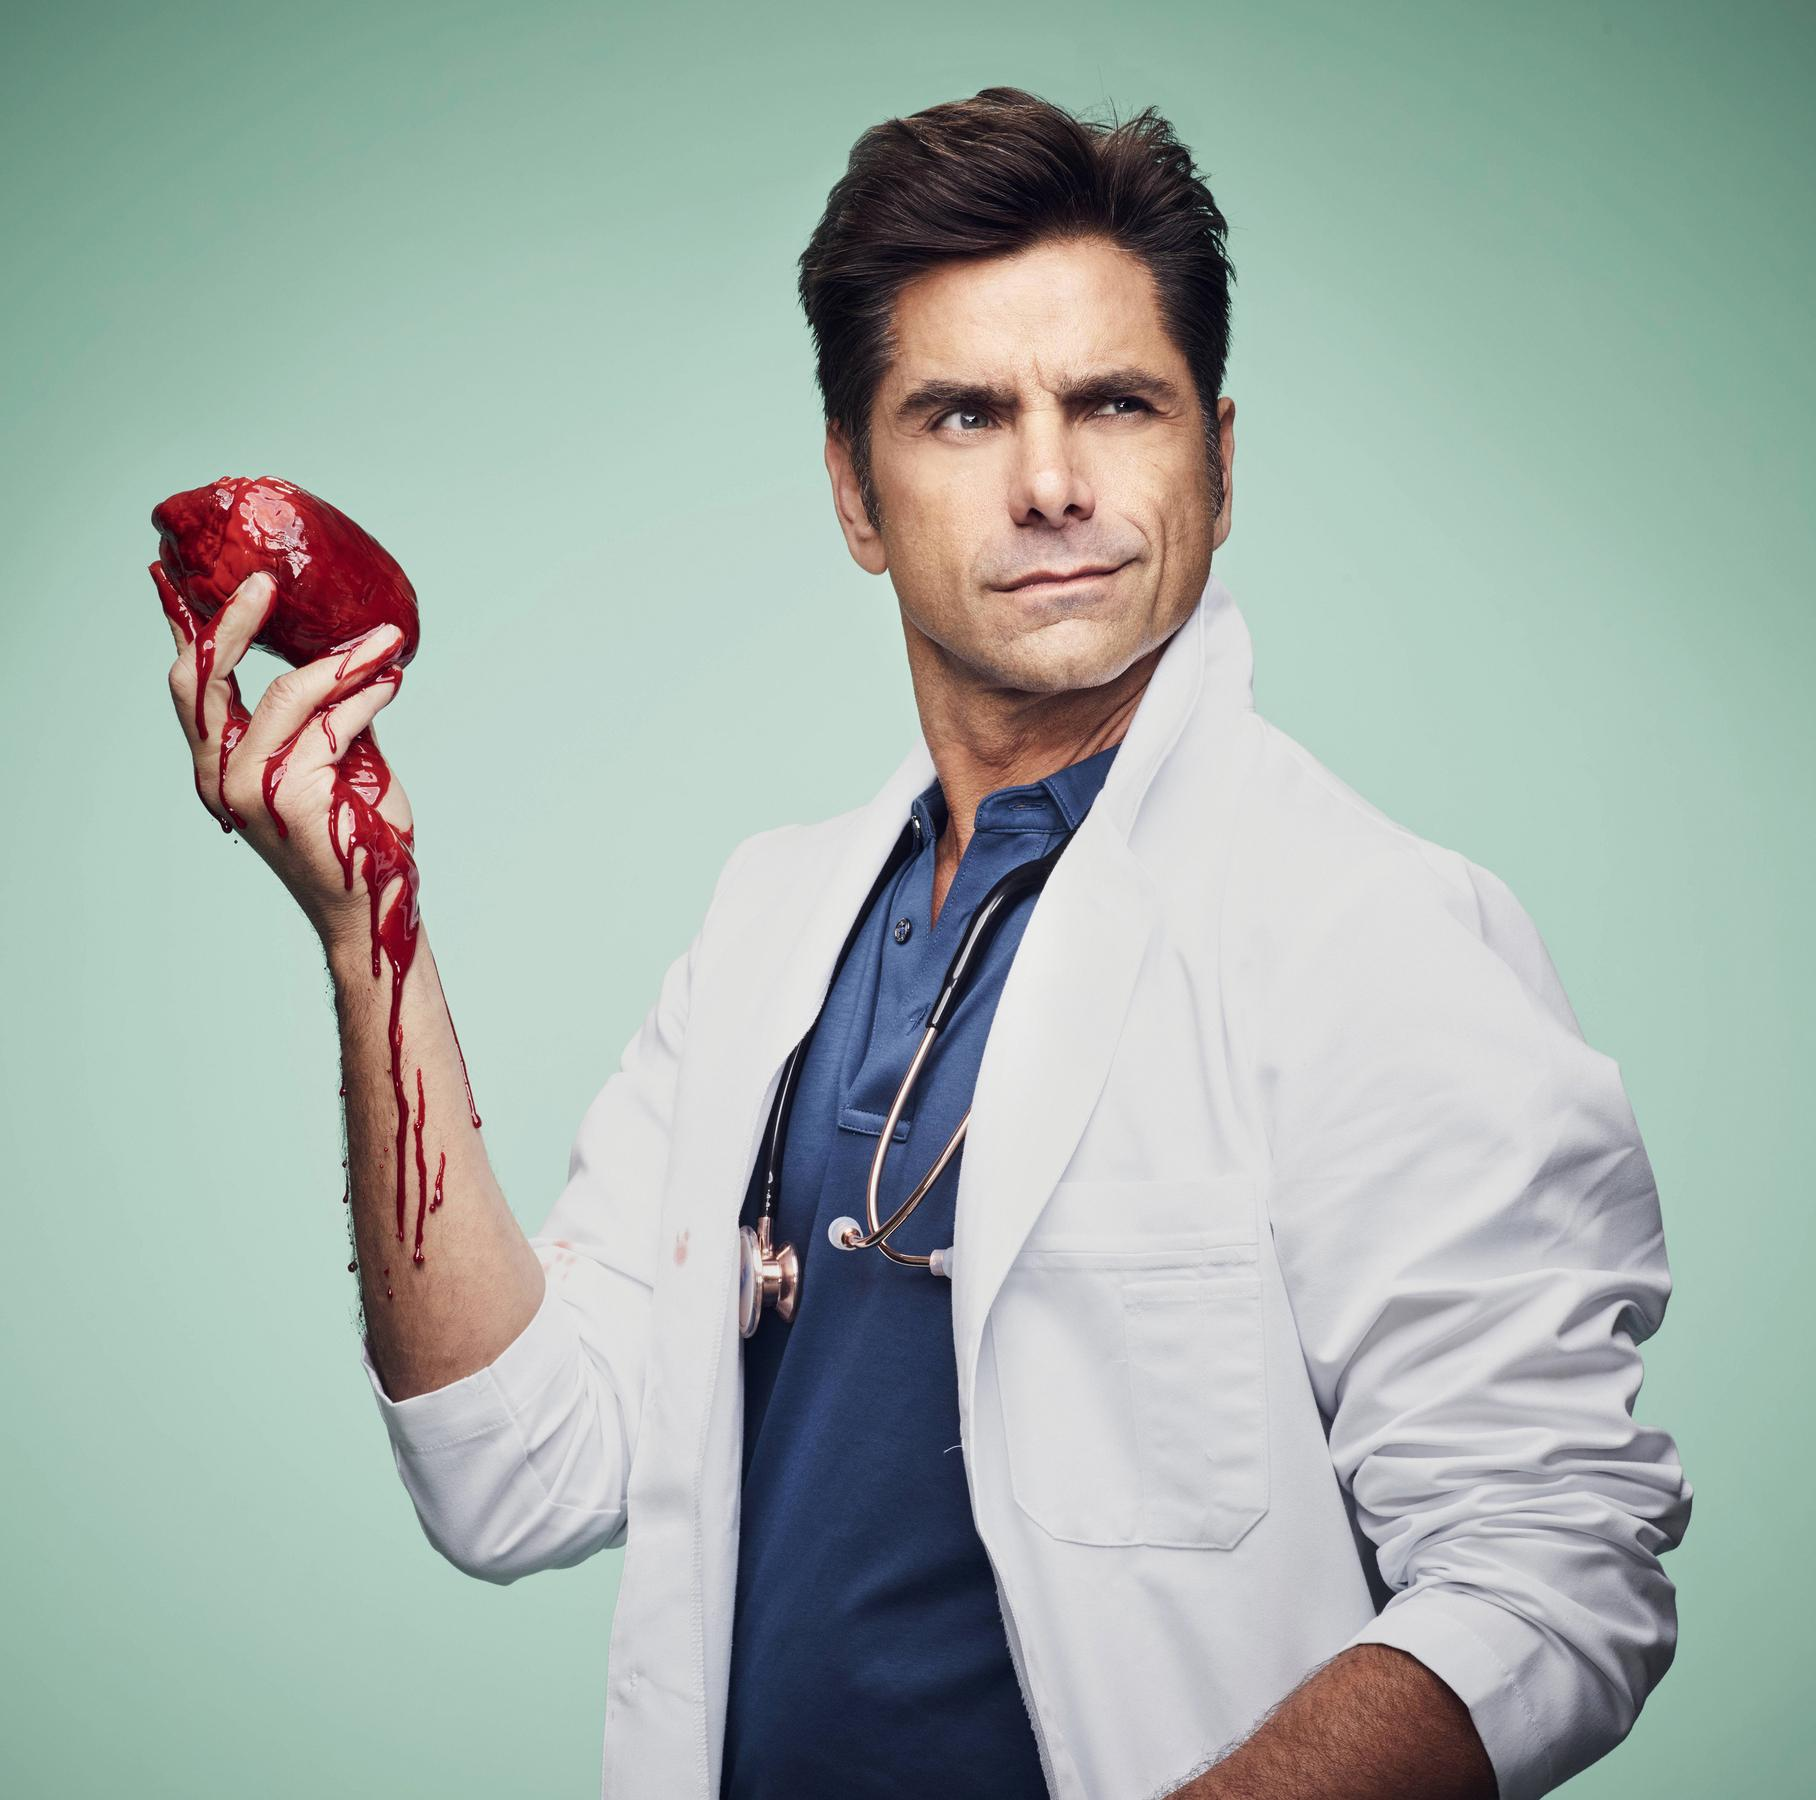 John Stamos as Dr. Brock Holt